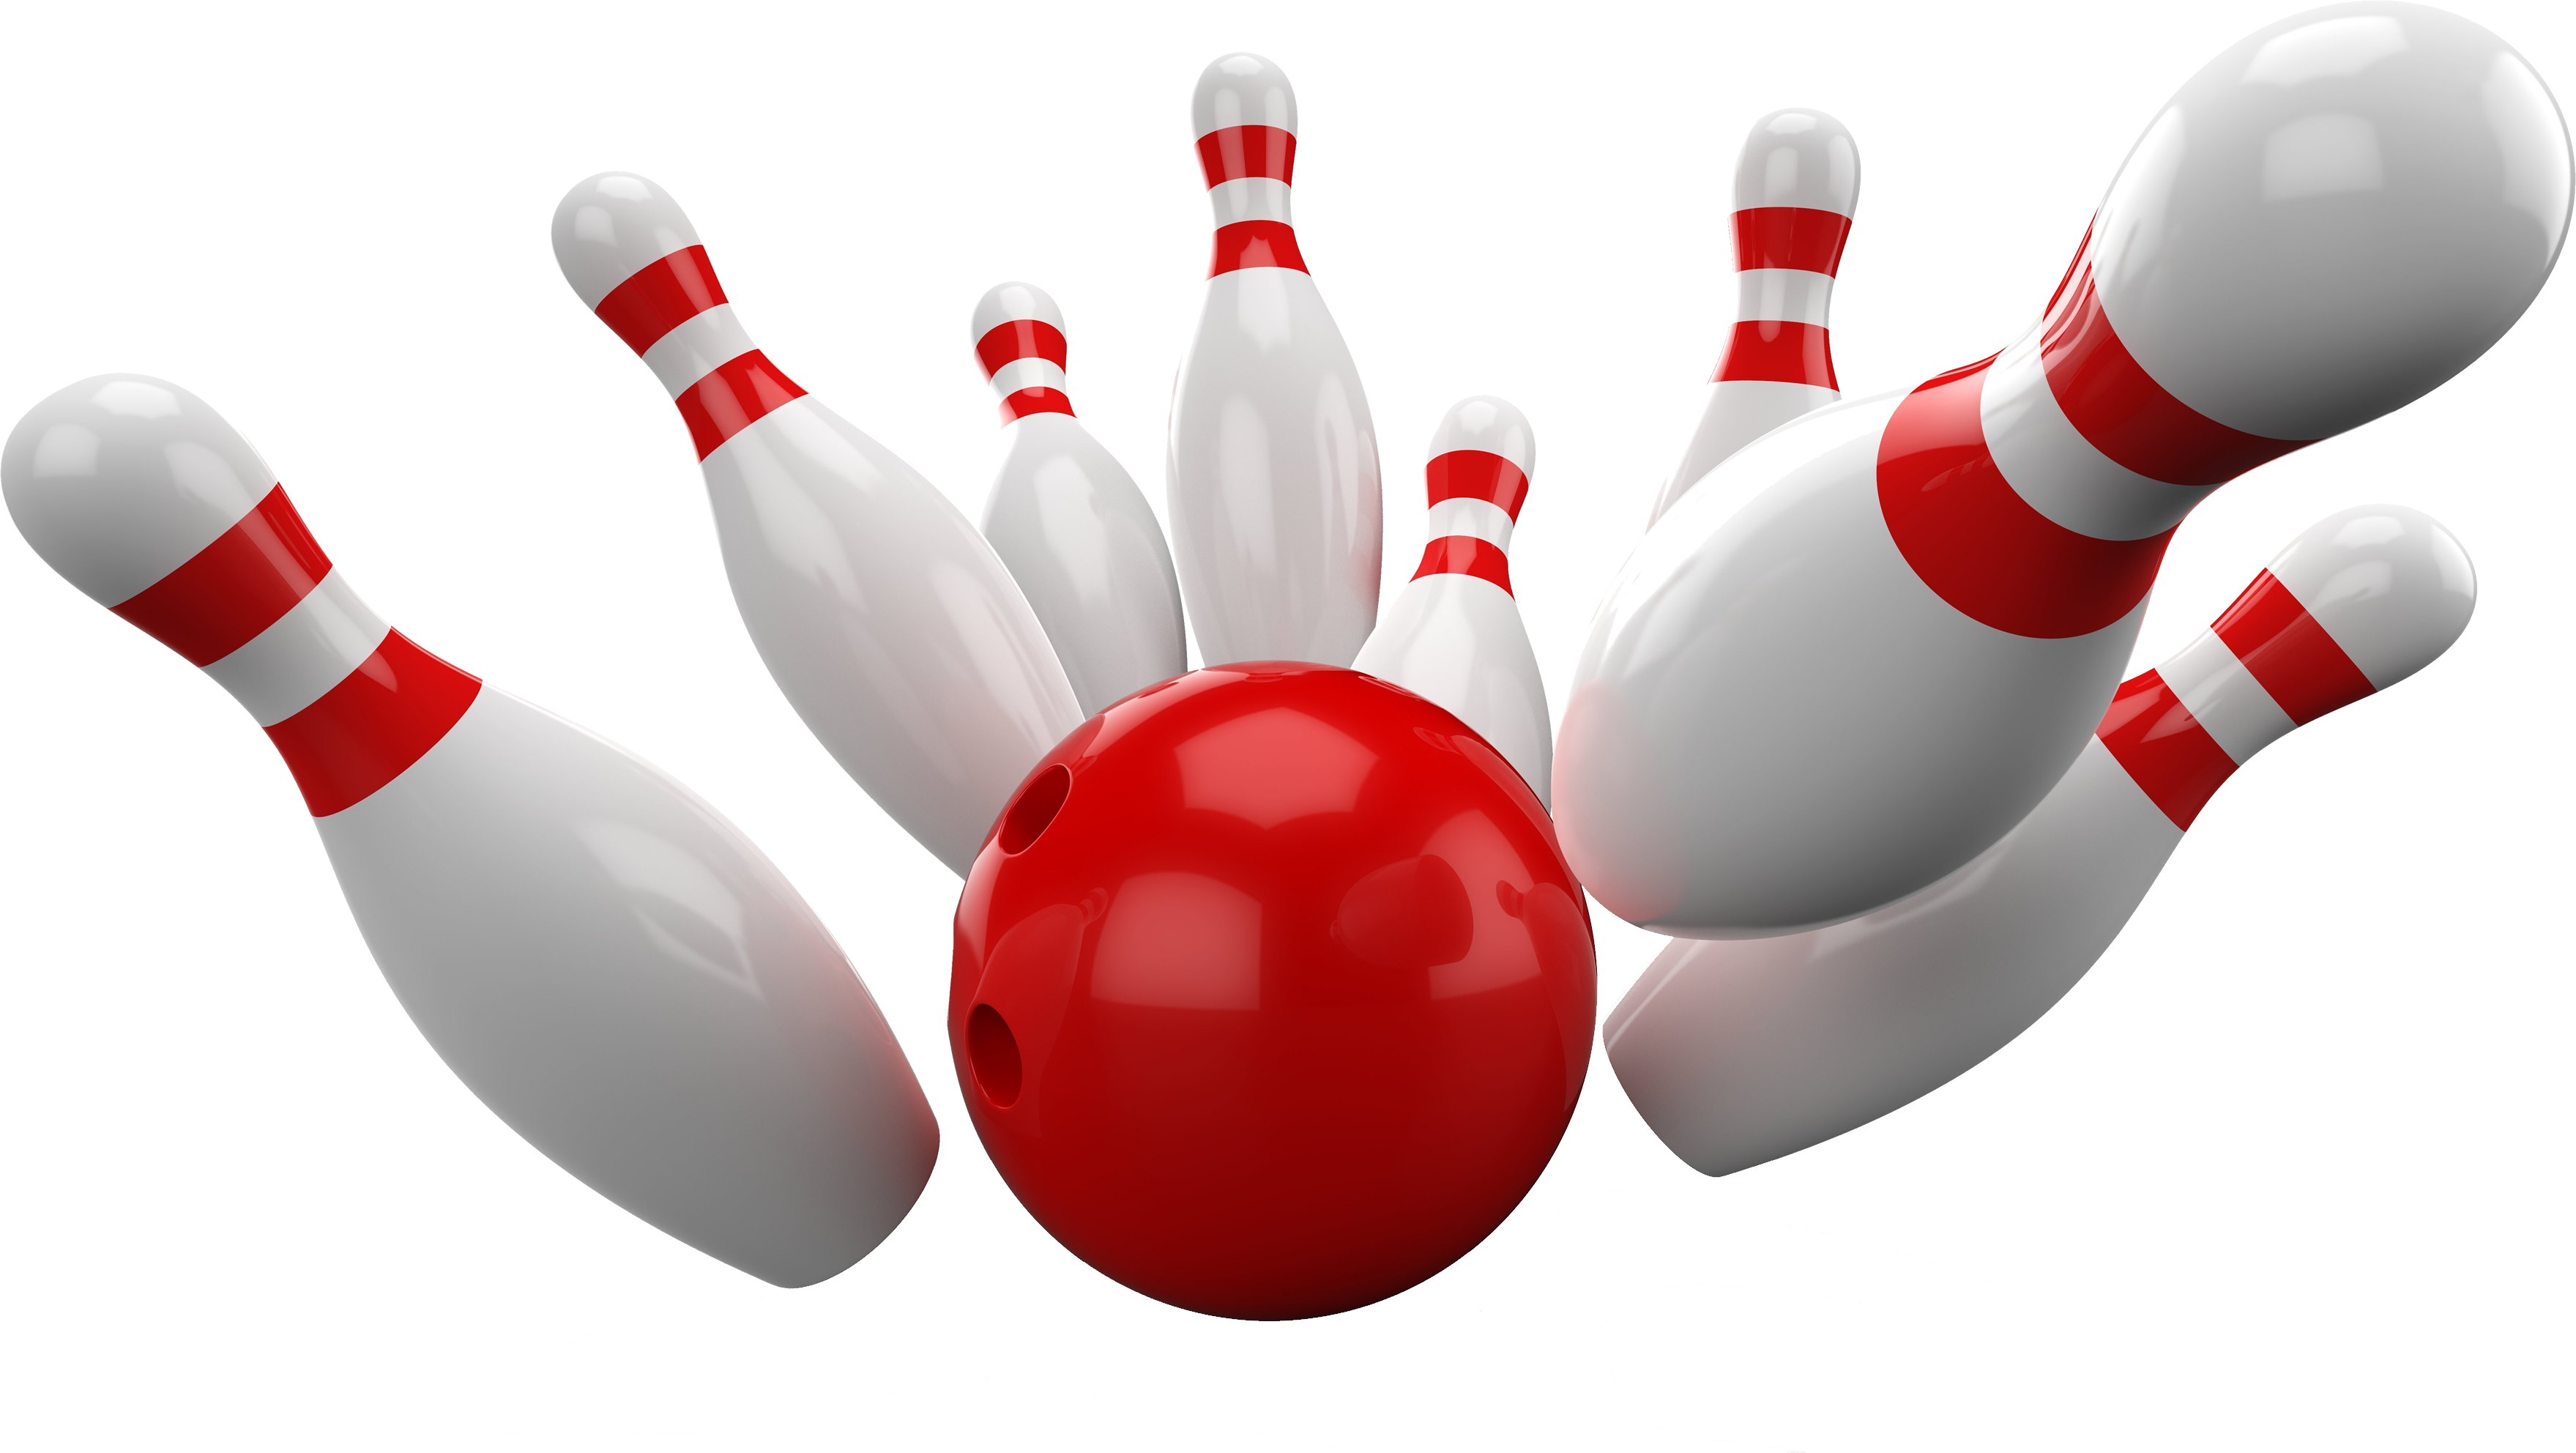 Bowling ball and pins png. Image purepng free transparent